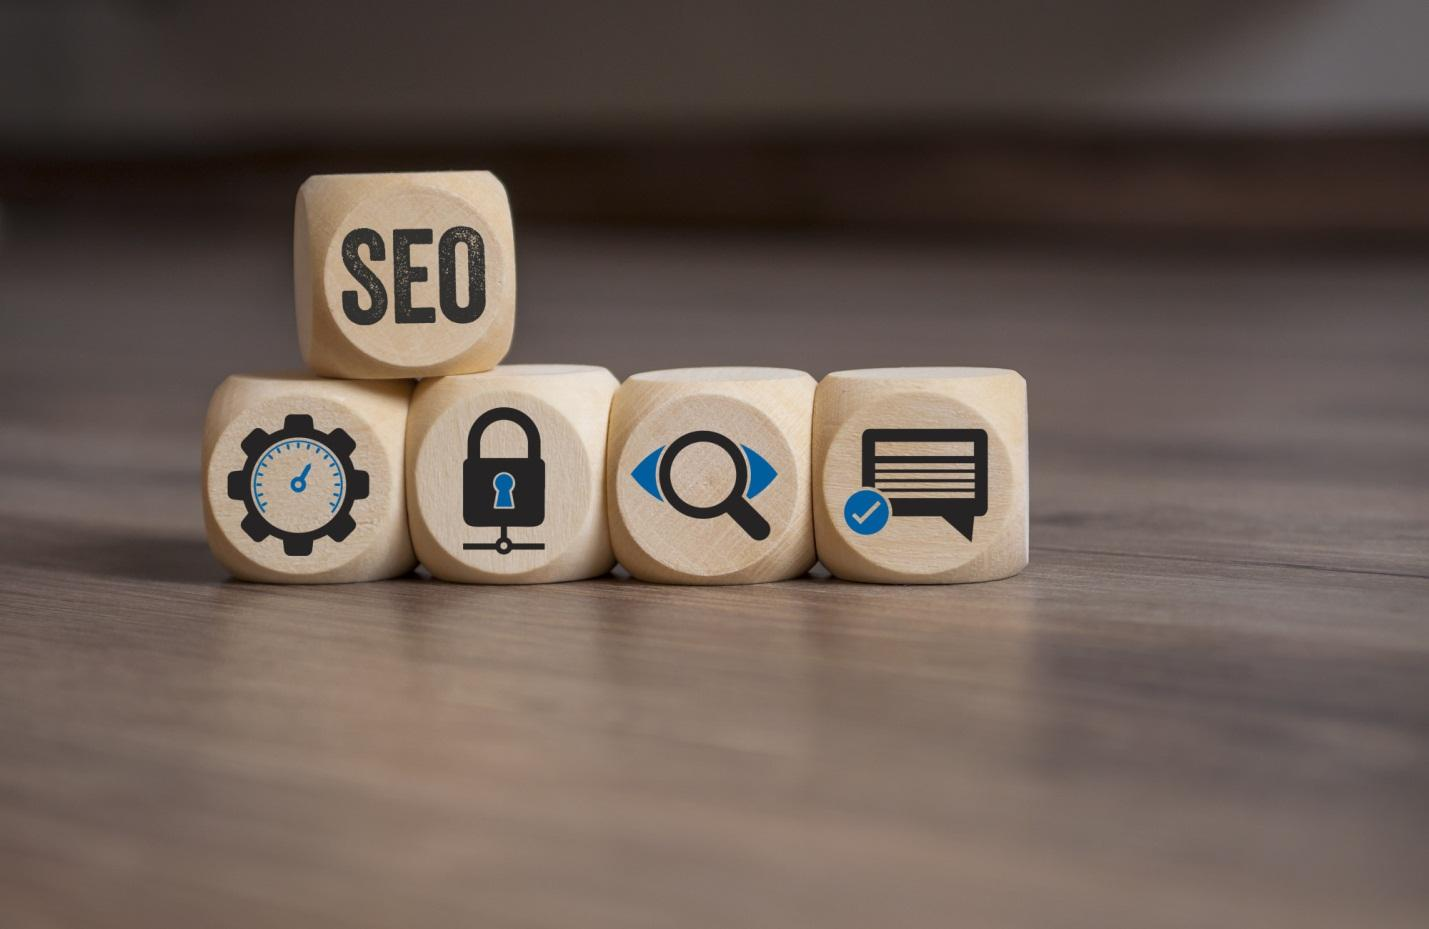 C:\Users\Muhammad Ans\Downloads\What Are the SEO Trends In 2021.jpg